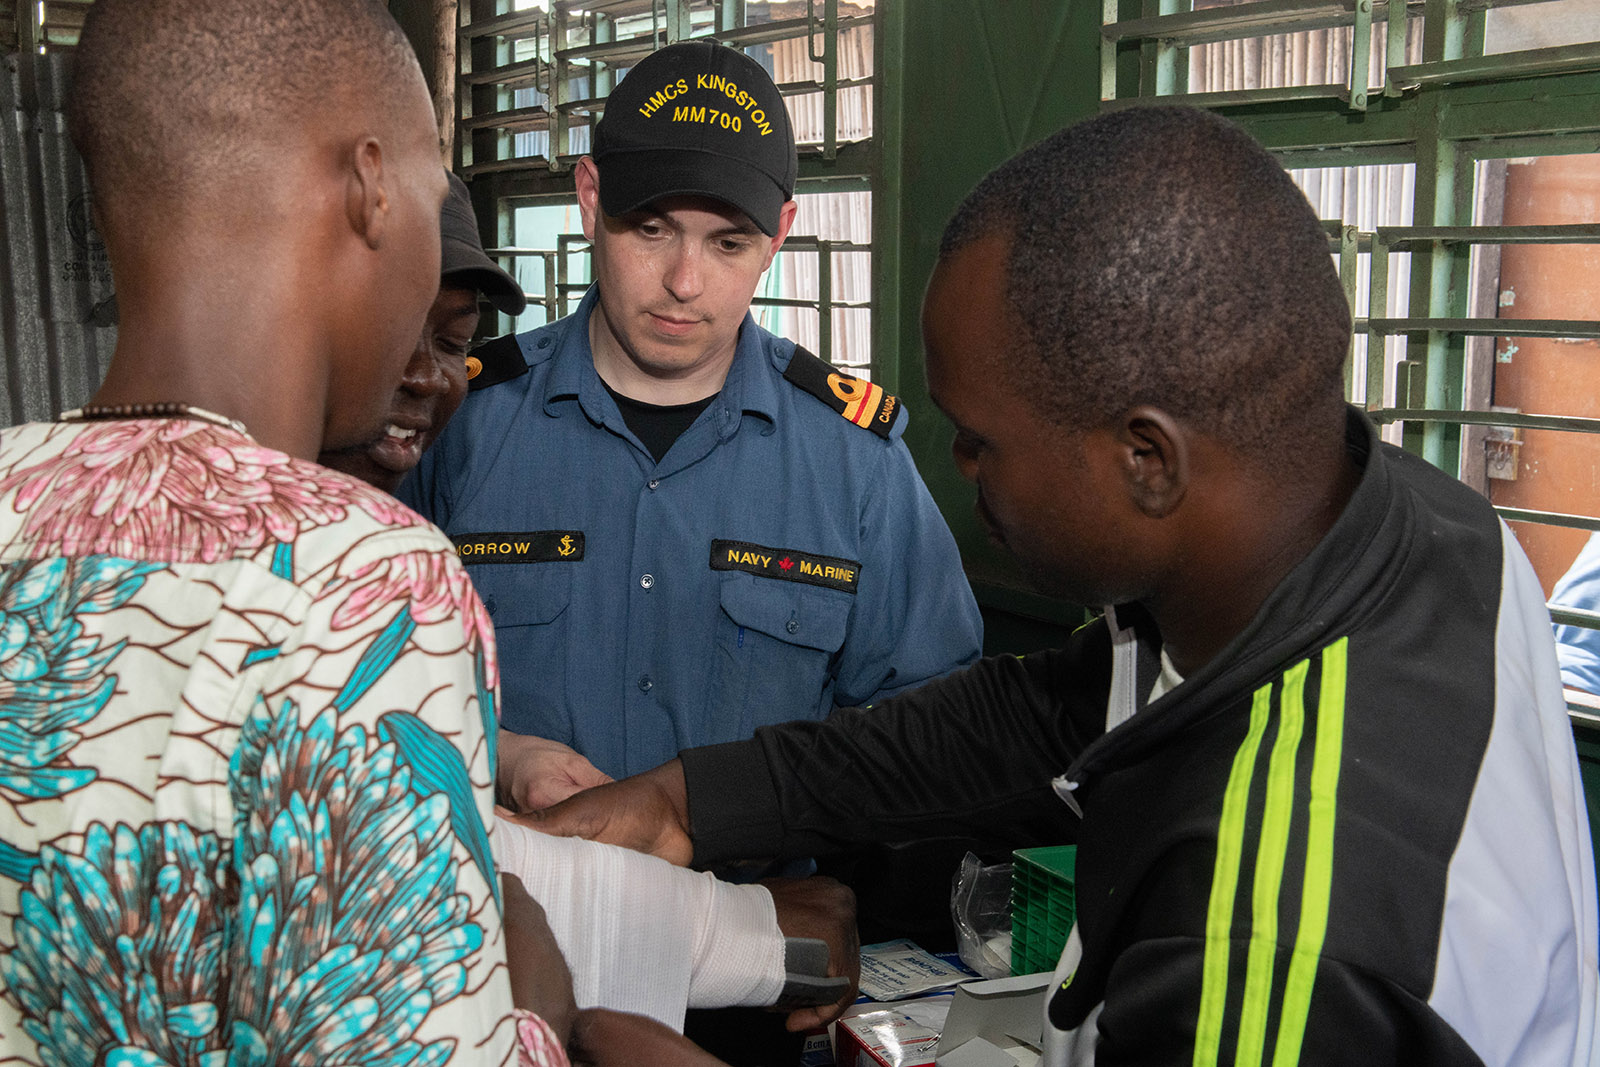 Lt(N) Greg Morrow supervises while local teachers practice first aid at Foyer Don Bosco school in Cotonou, Benin during Operation PROJECTION West Africa on March 1, 2019.